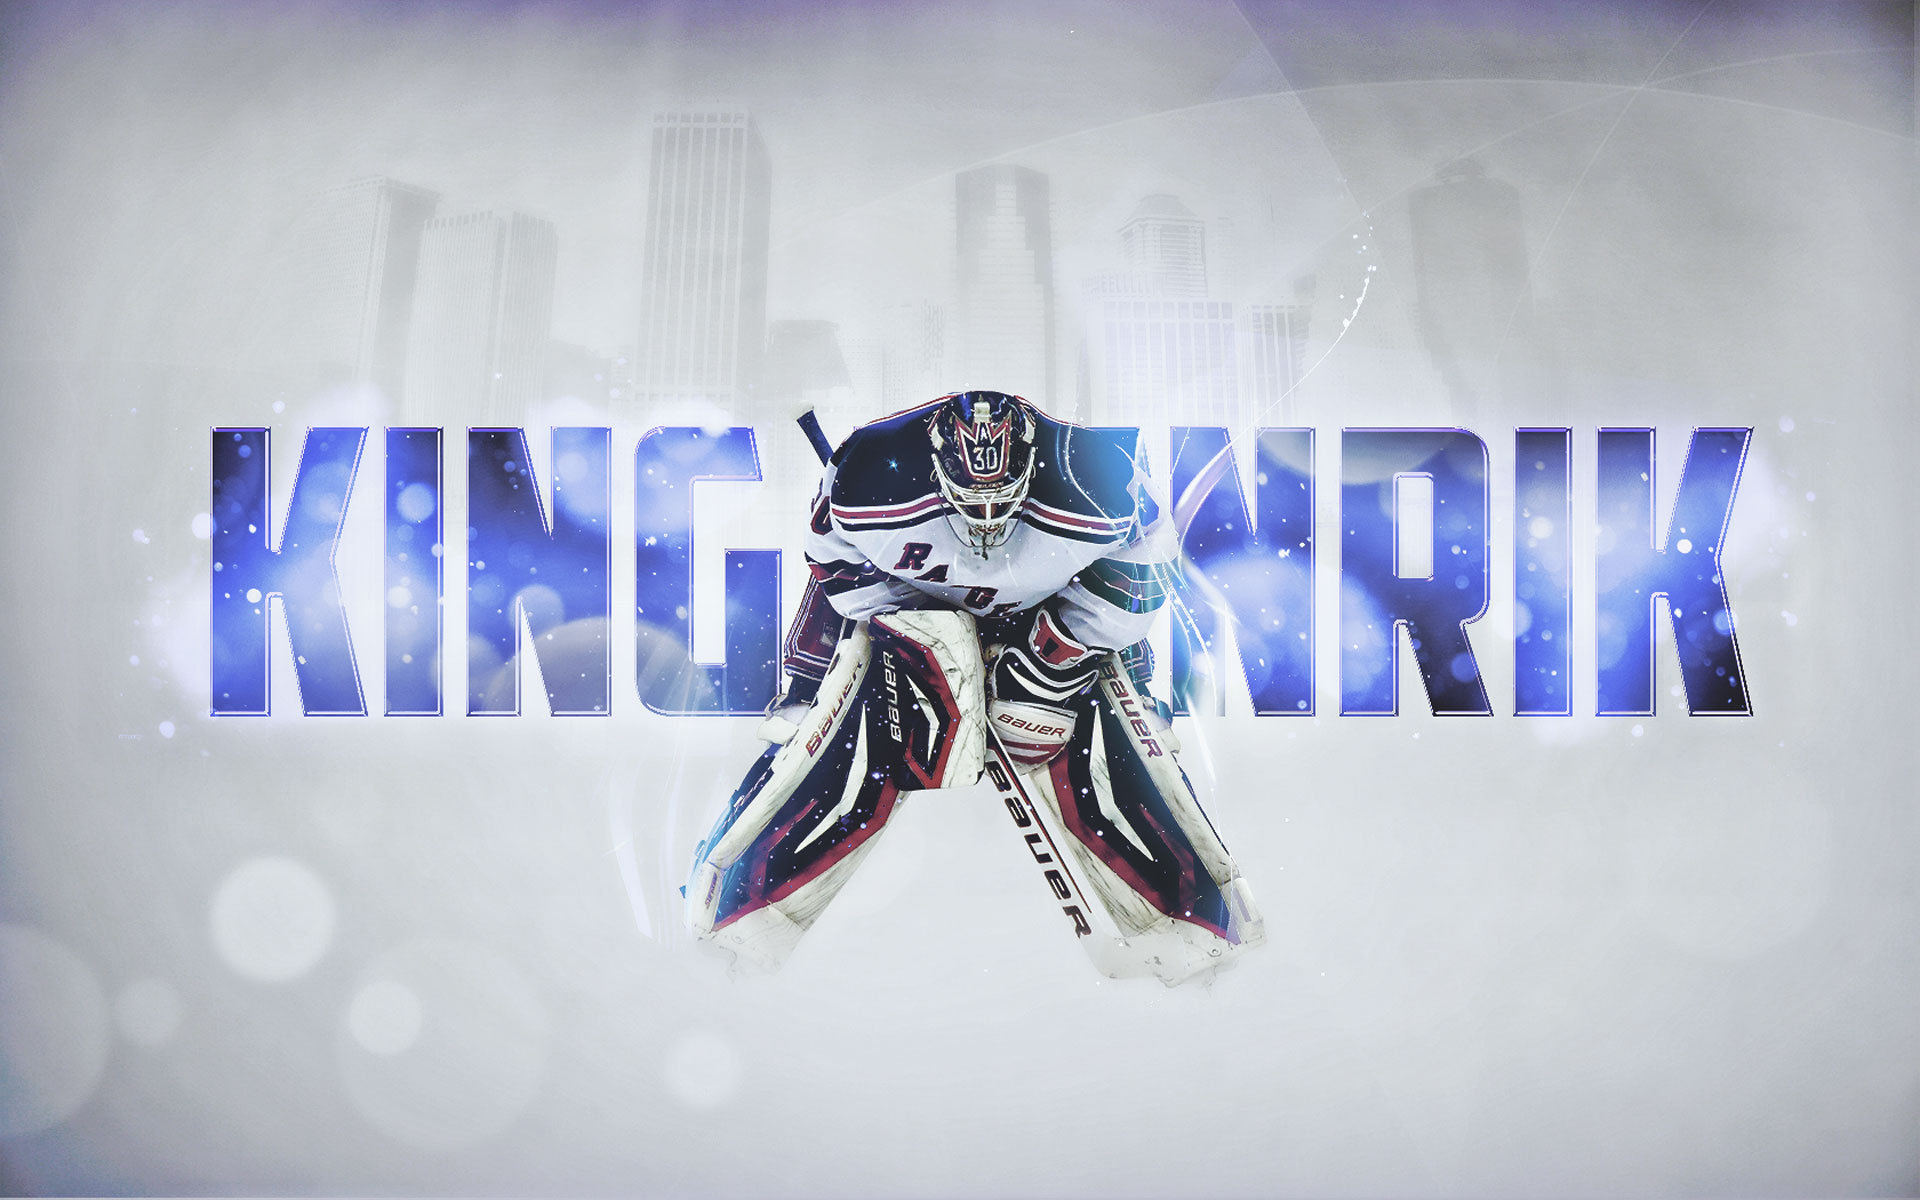 Henrik Lundqvist Wallpapers and Background Images   stmednet 1920x1200